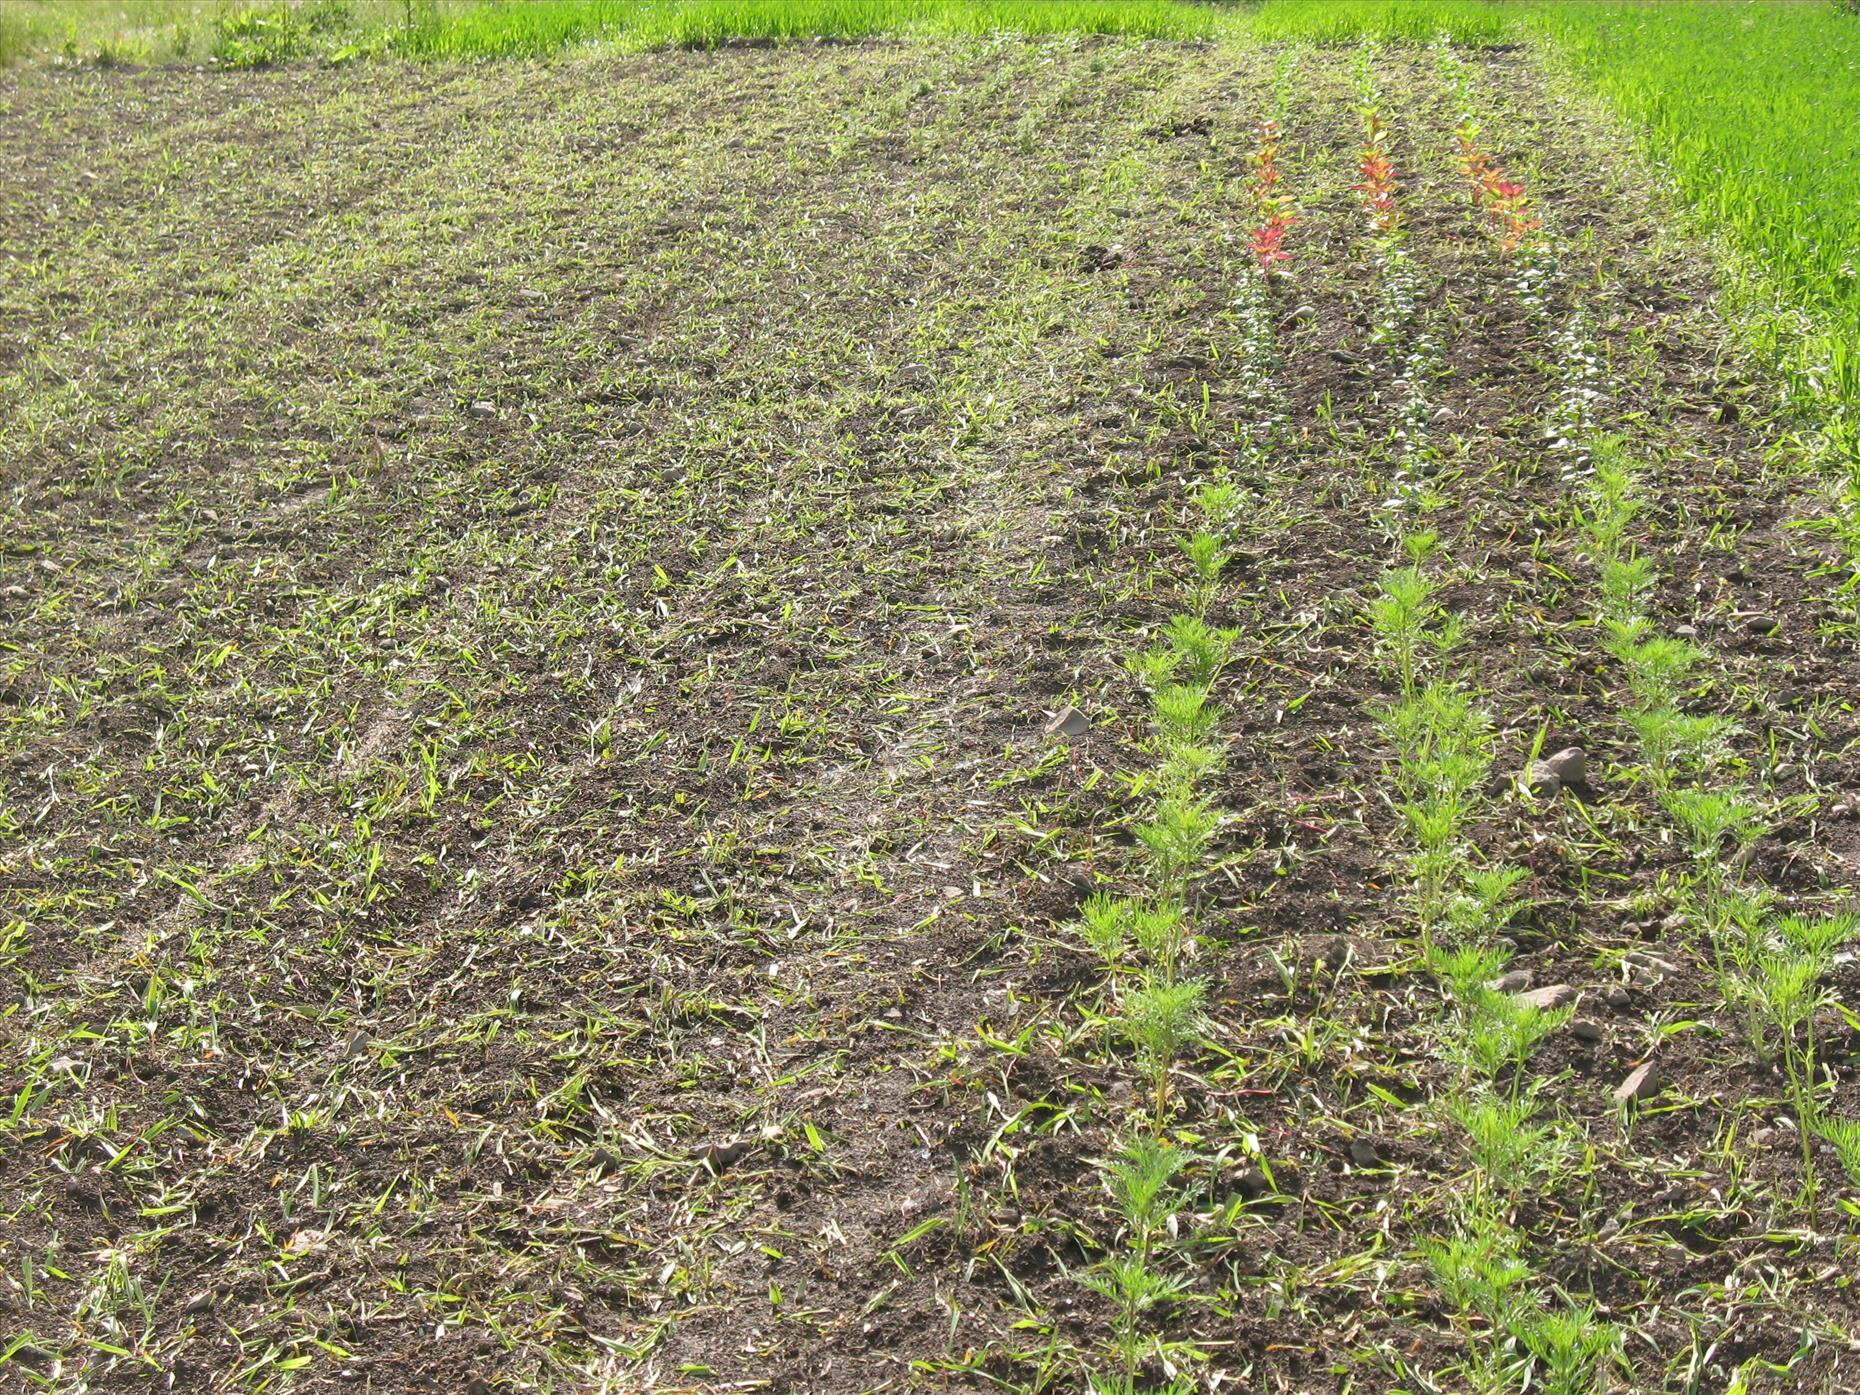 One of the rougher areas tilled up for flowers--the green is just oats, which should break down quickly (we hope!).